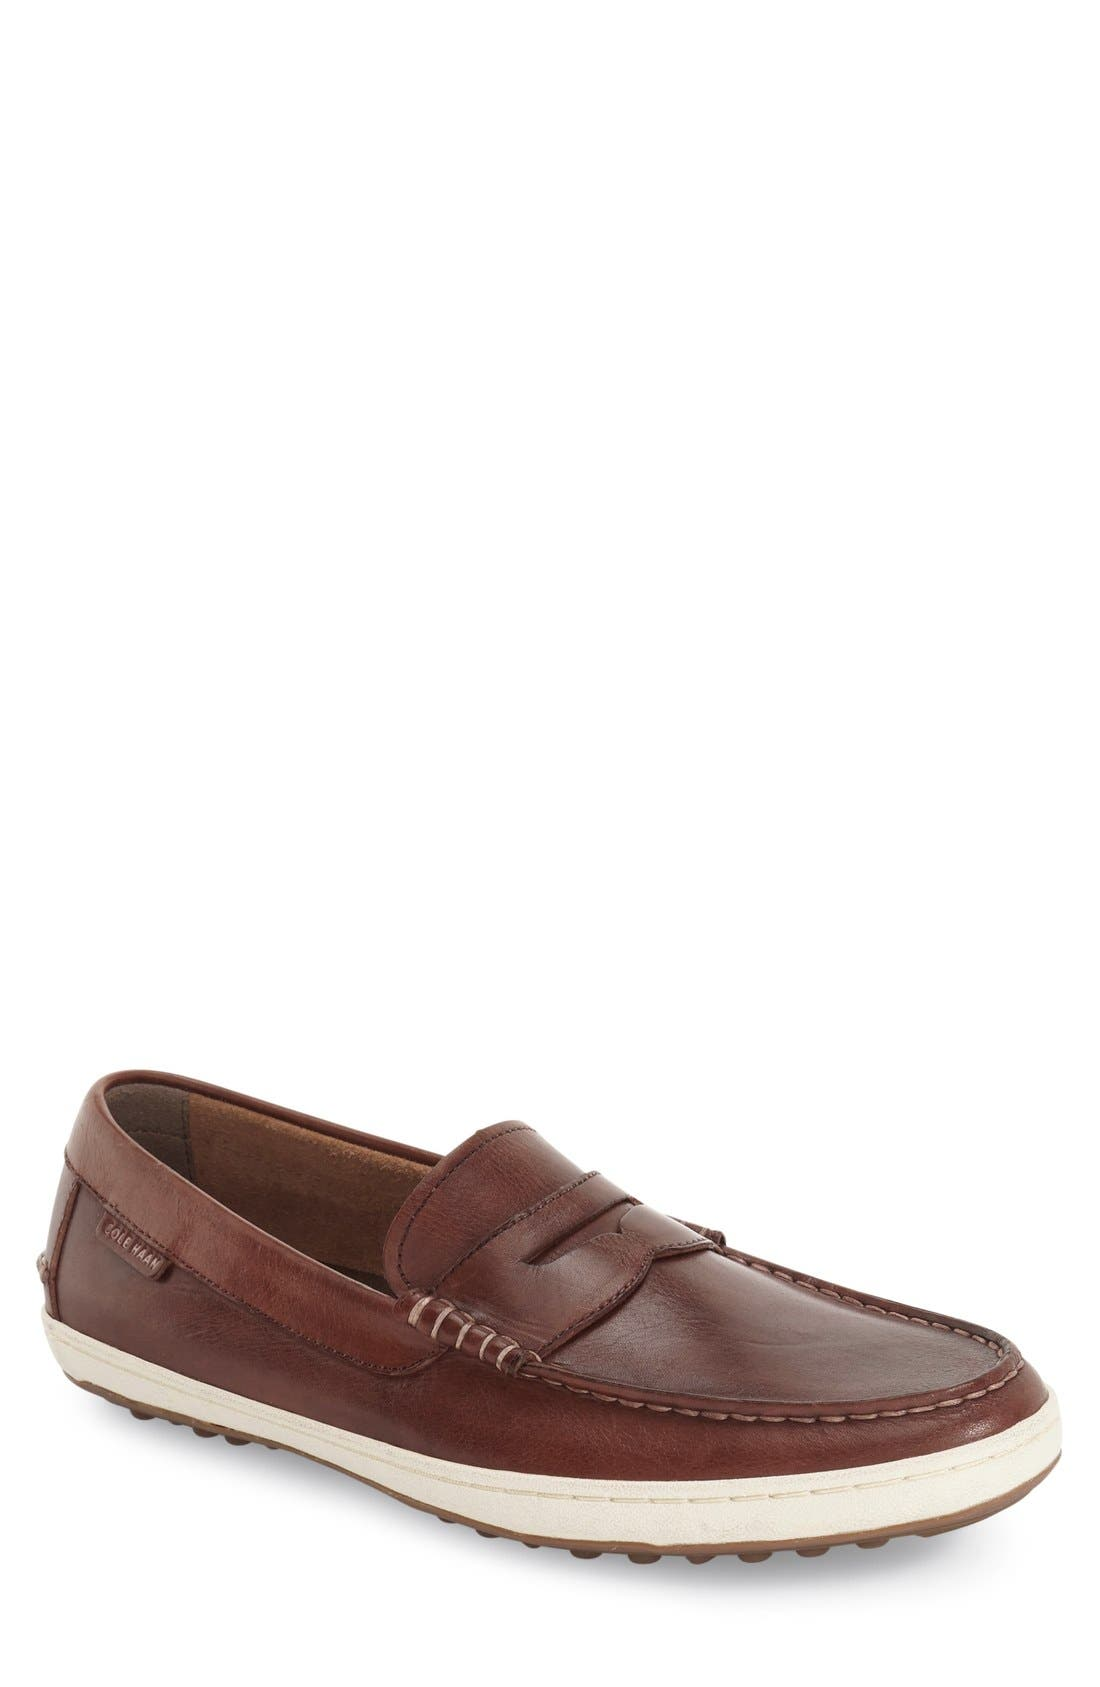 'Pinch Roadtrip' Penny Loafer,                             Main thumbnail 1, color,                             200